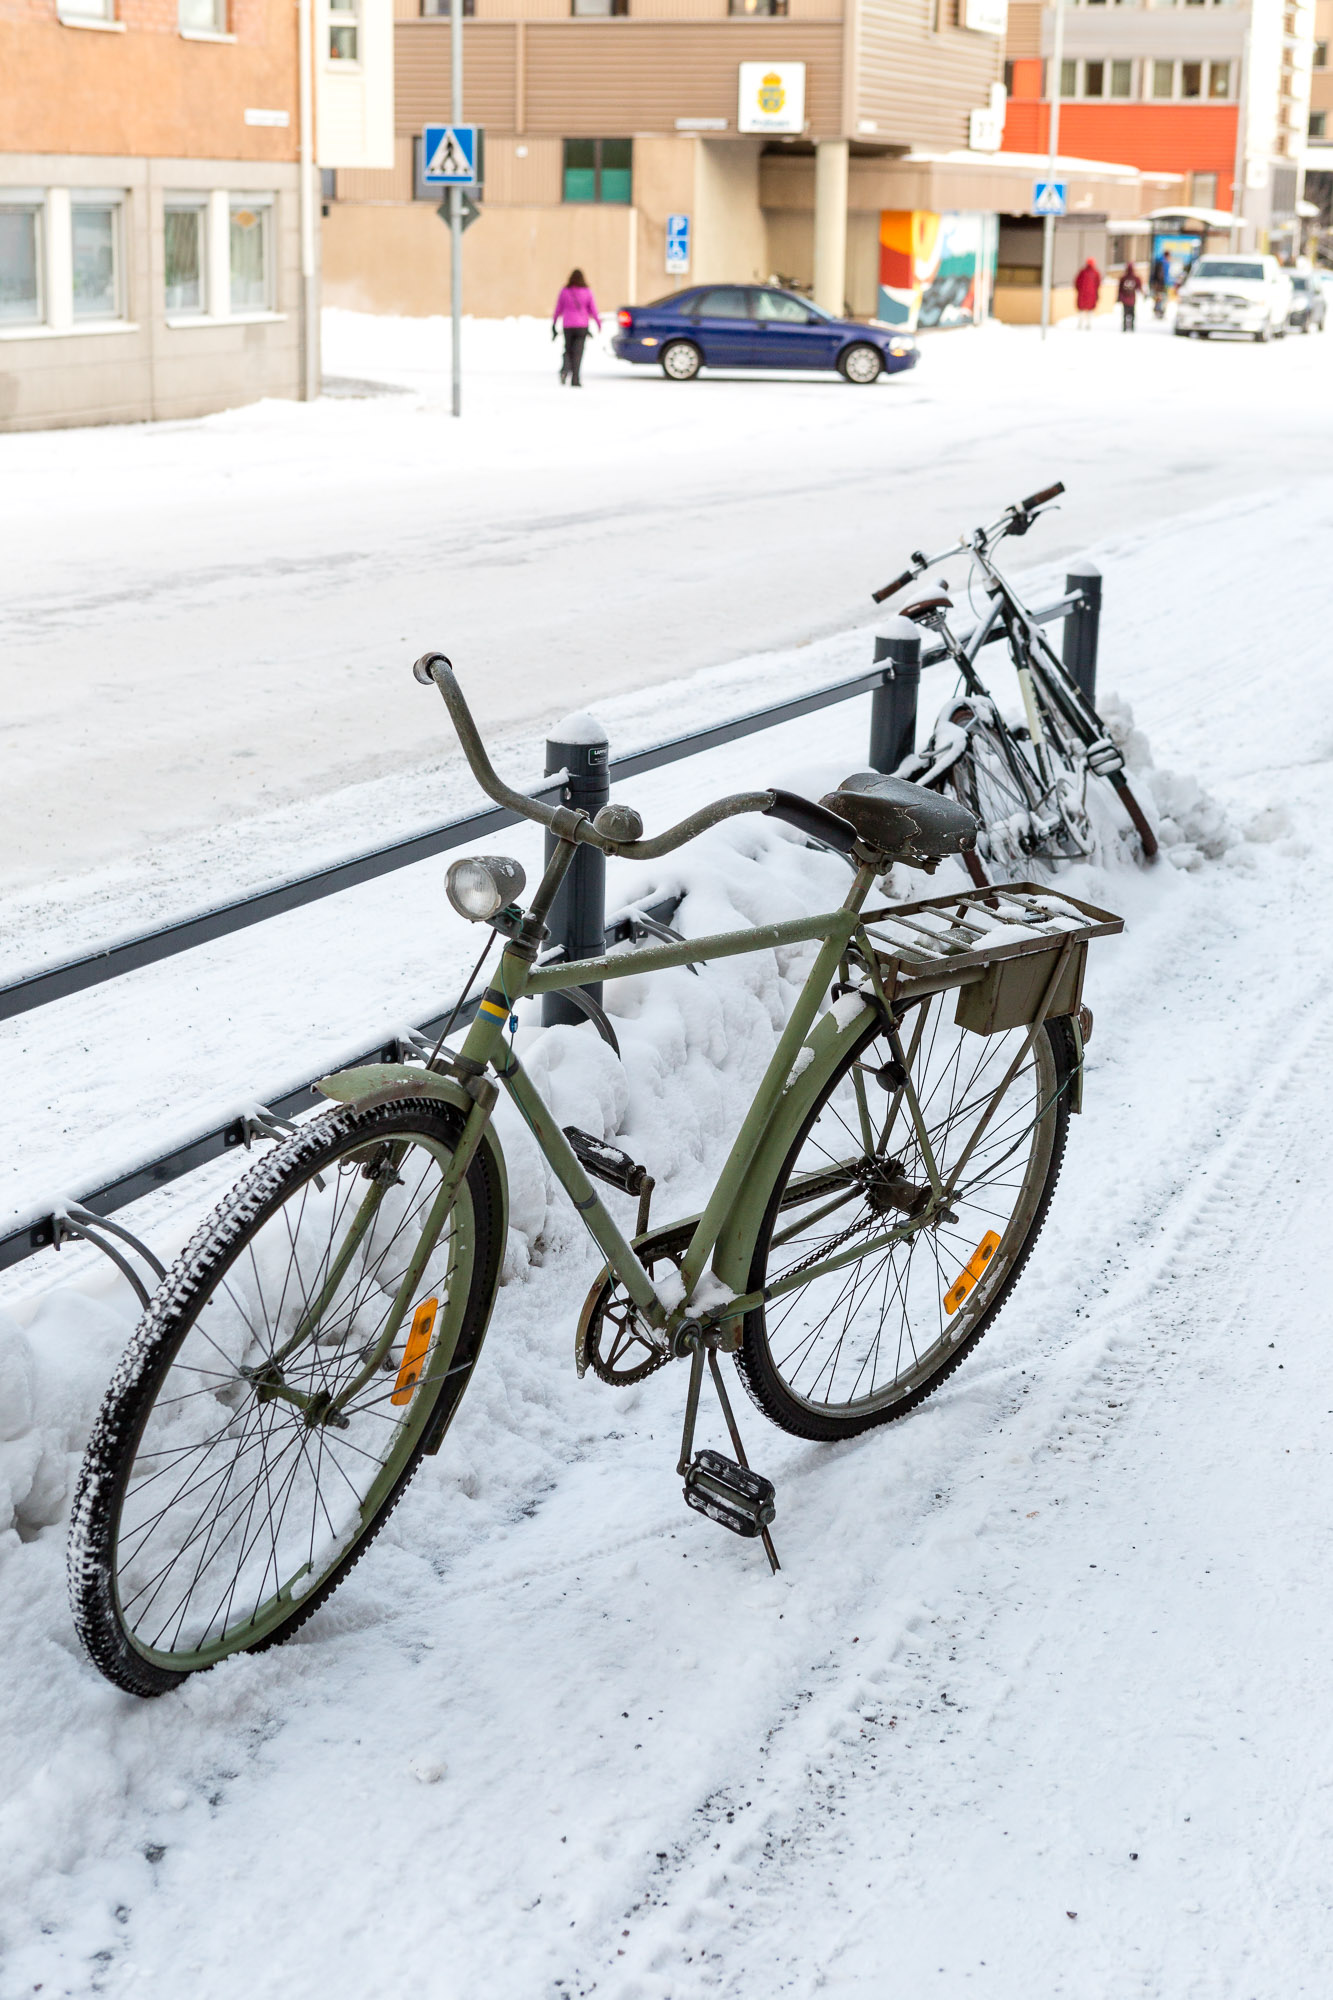 Bicycle, Luleå, Sweden January 2017, Ben Lee Photography